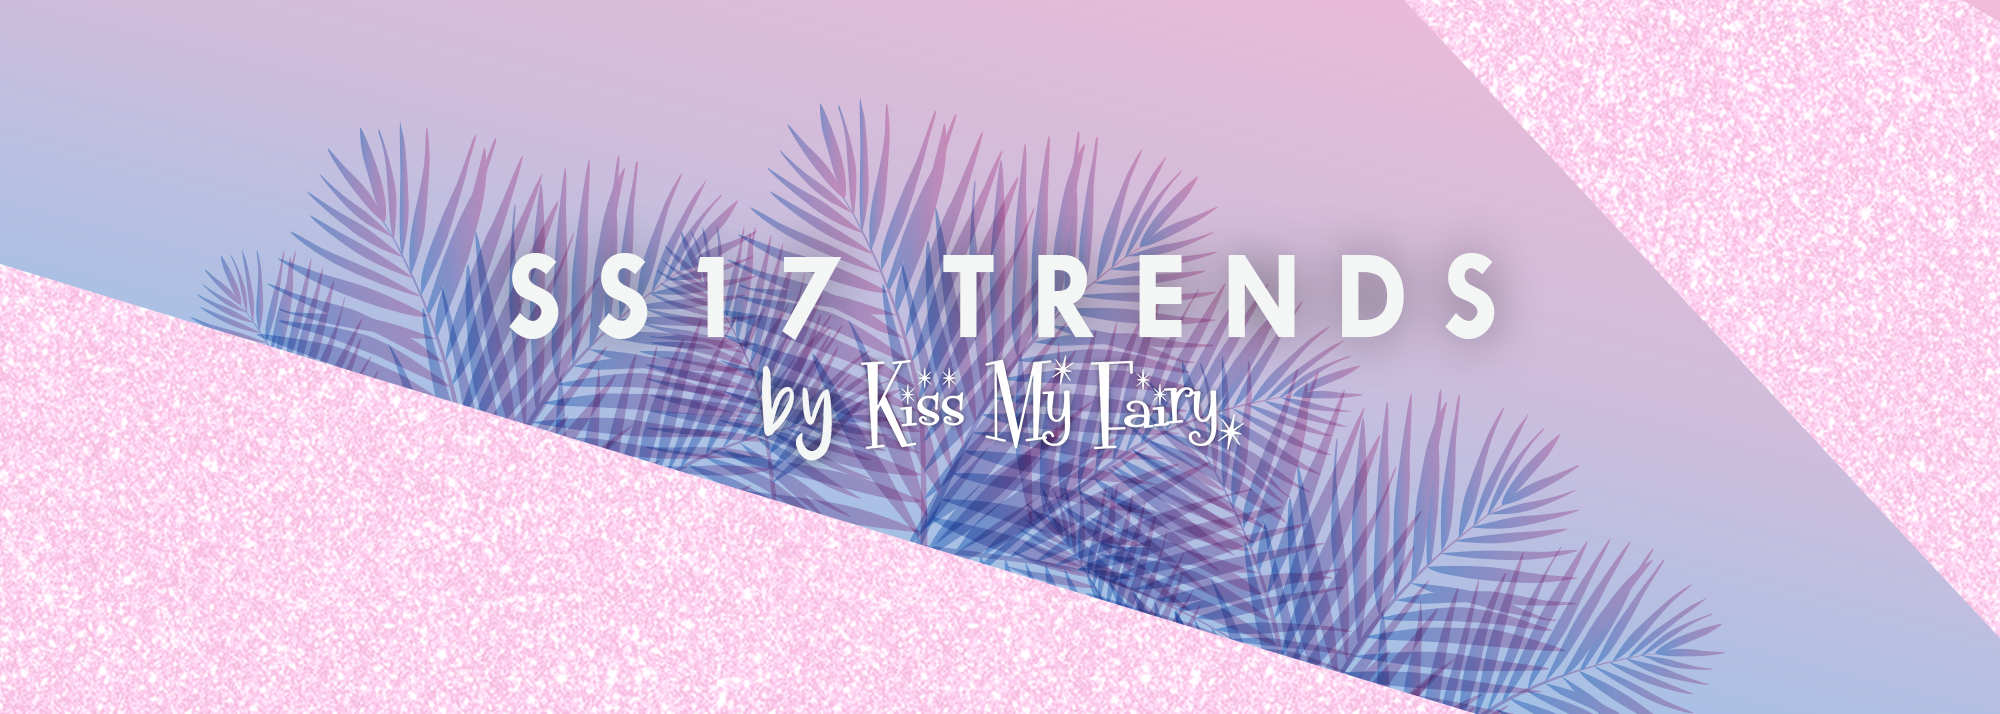 Kiss My Fairy's SS17 Beauty Trends!